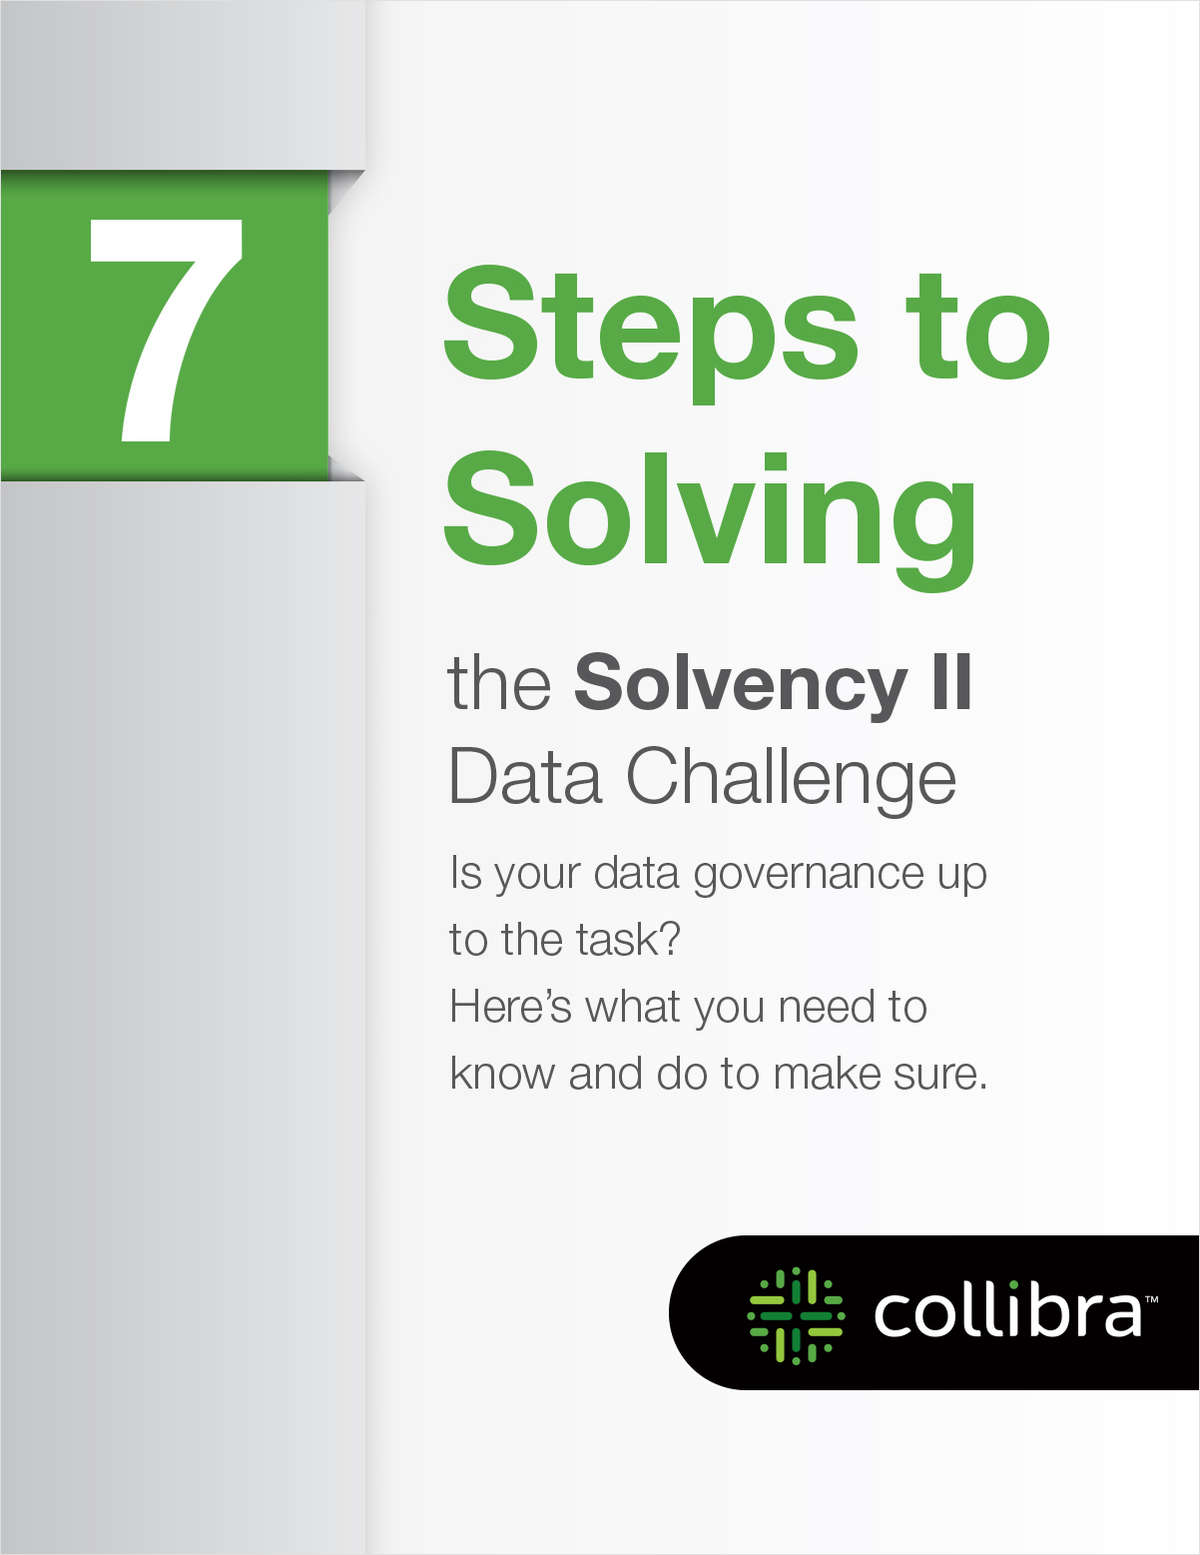 7 Steps to Solving your Solvency II Data Challenges